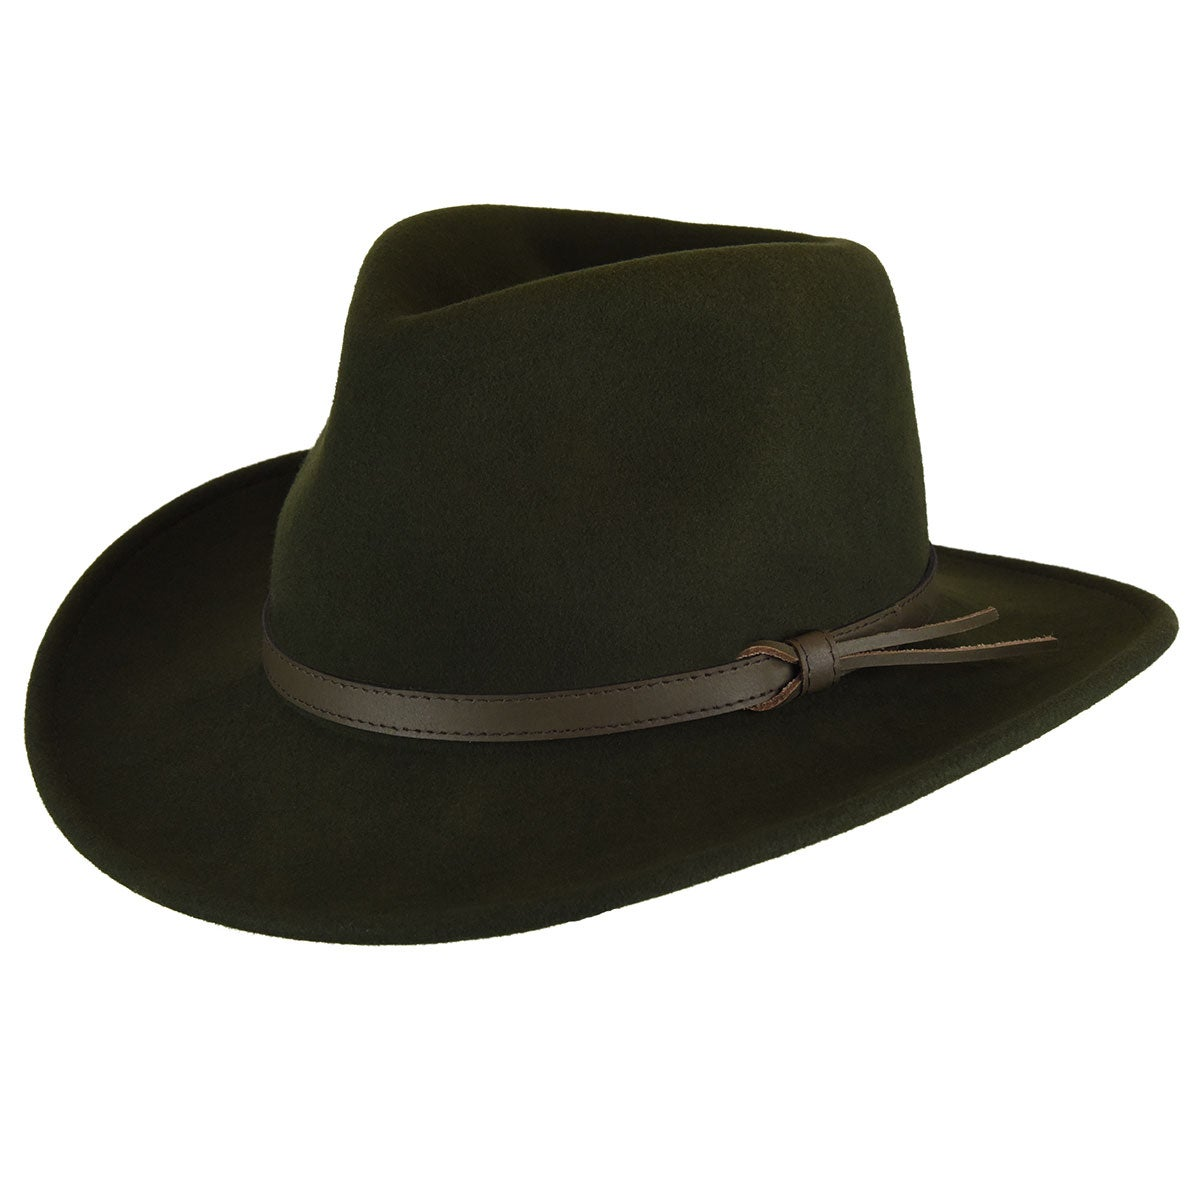 Bollman Hat Company 1990s Bollman Collection Outback in Loden